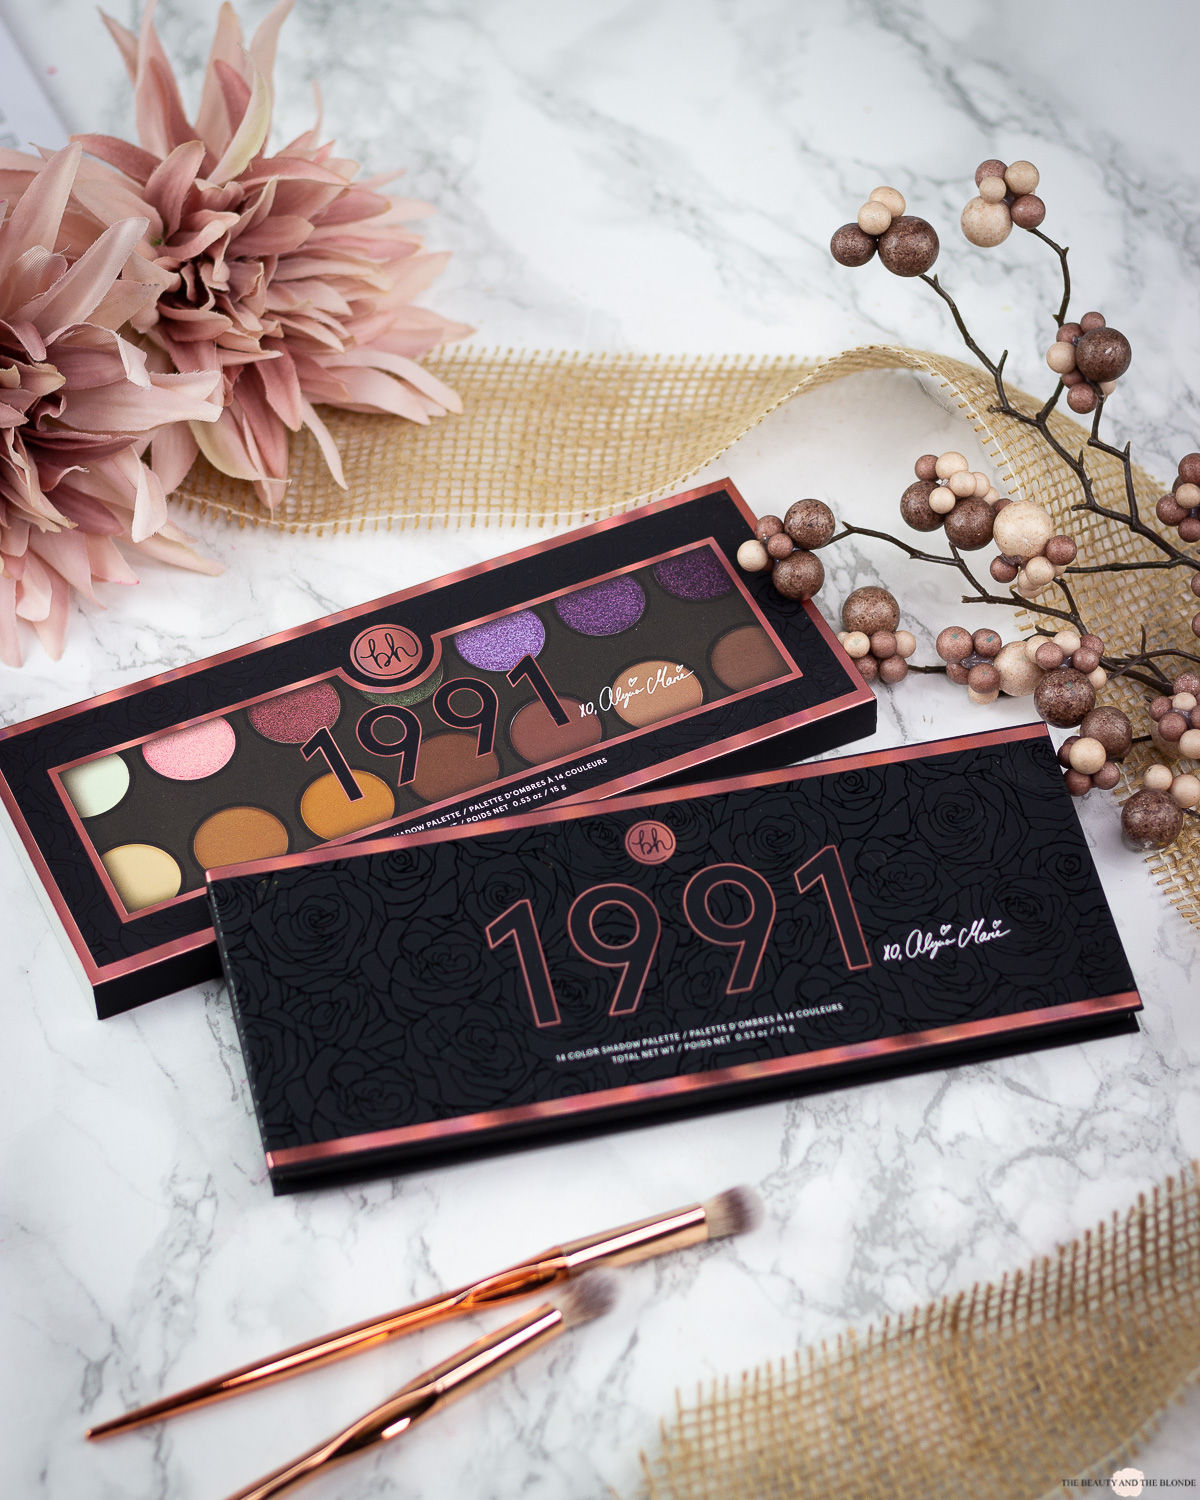 bh Cosmetics Alycia Marie 1991 Palette Review Swatches